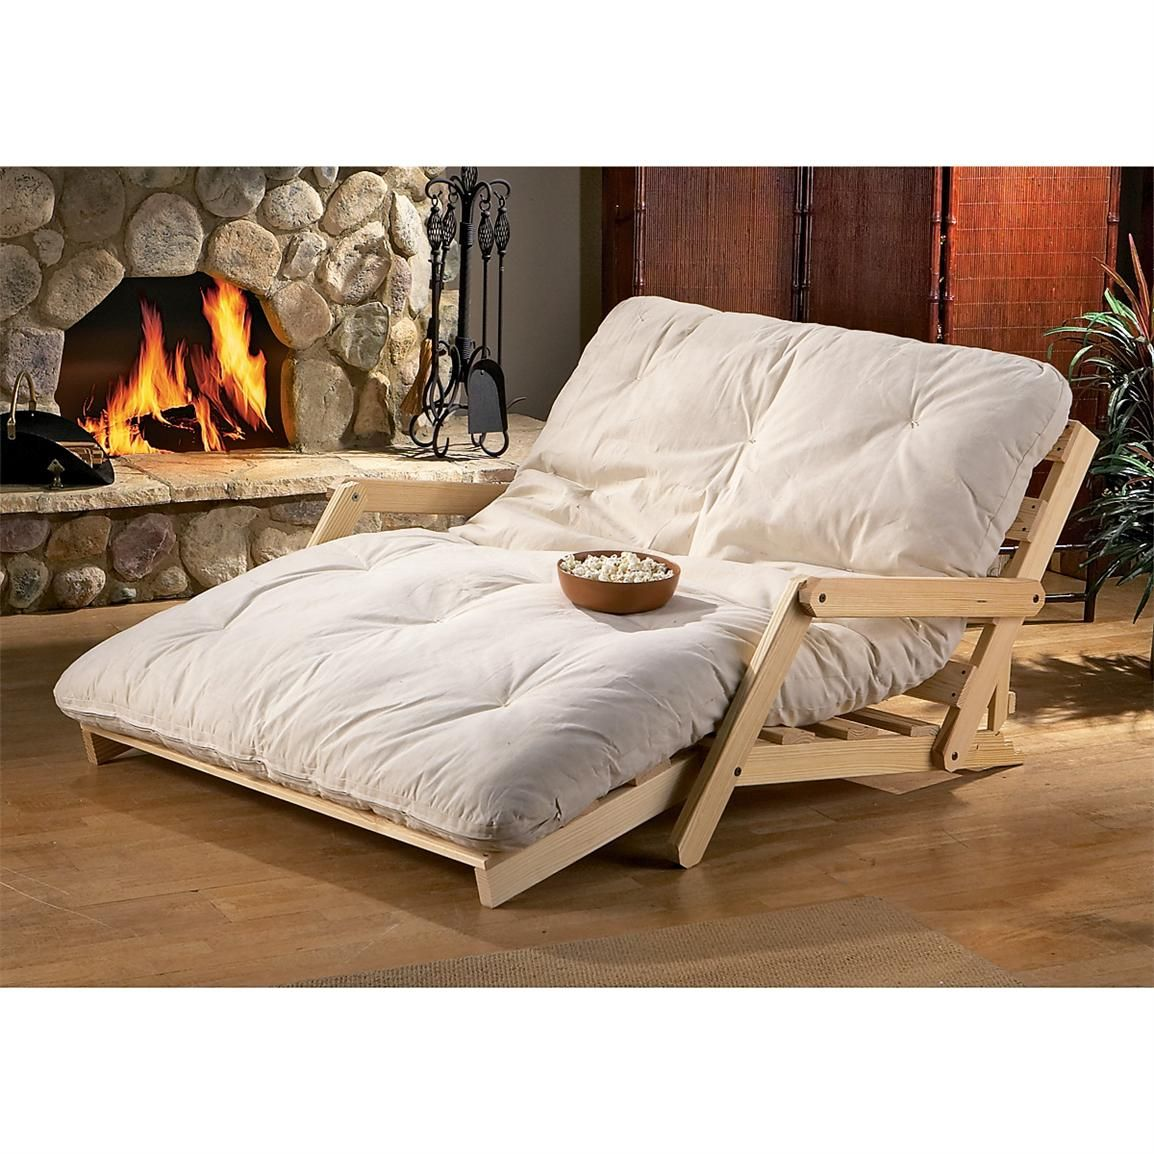 Trifecta Lounger, Natural - 244306, Futons at Sportsman's ...